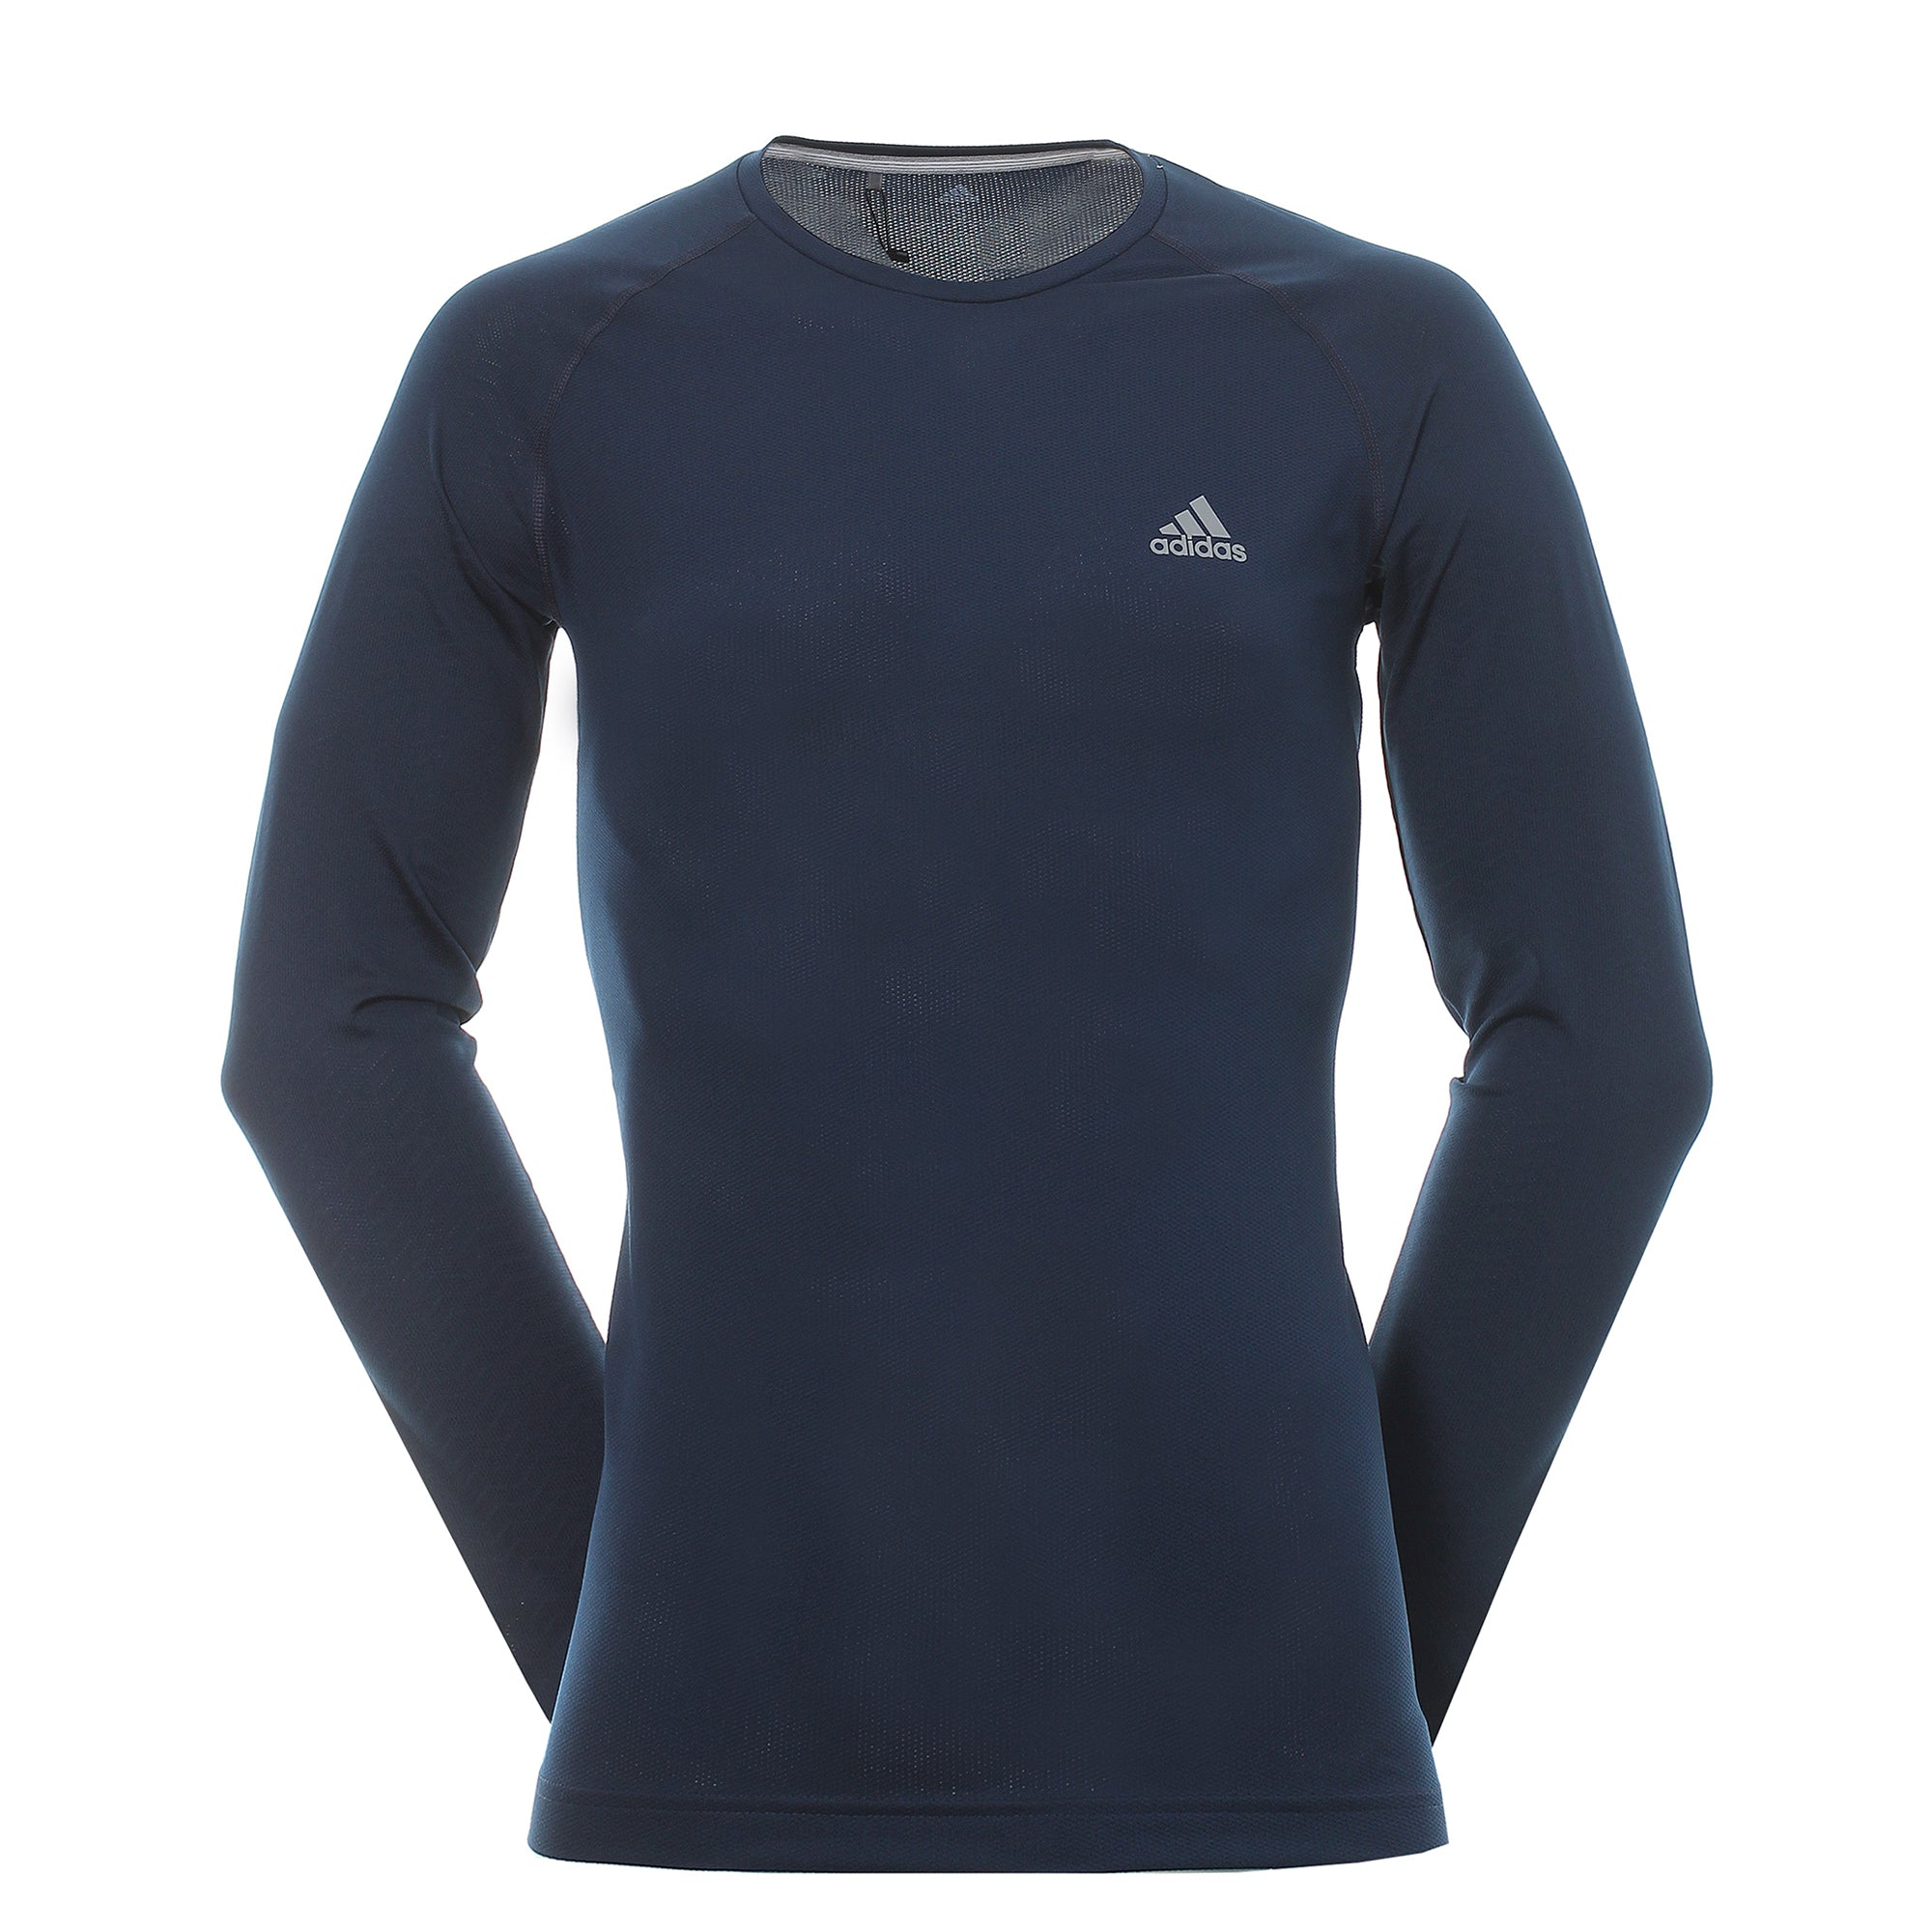 adidas Golf Climacool Crew Baselayer DX1332